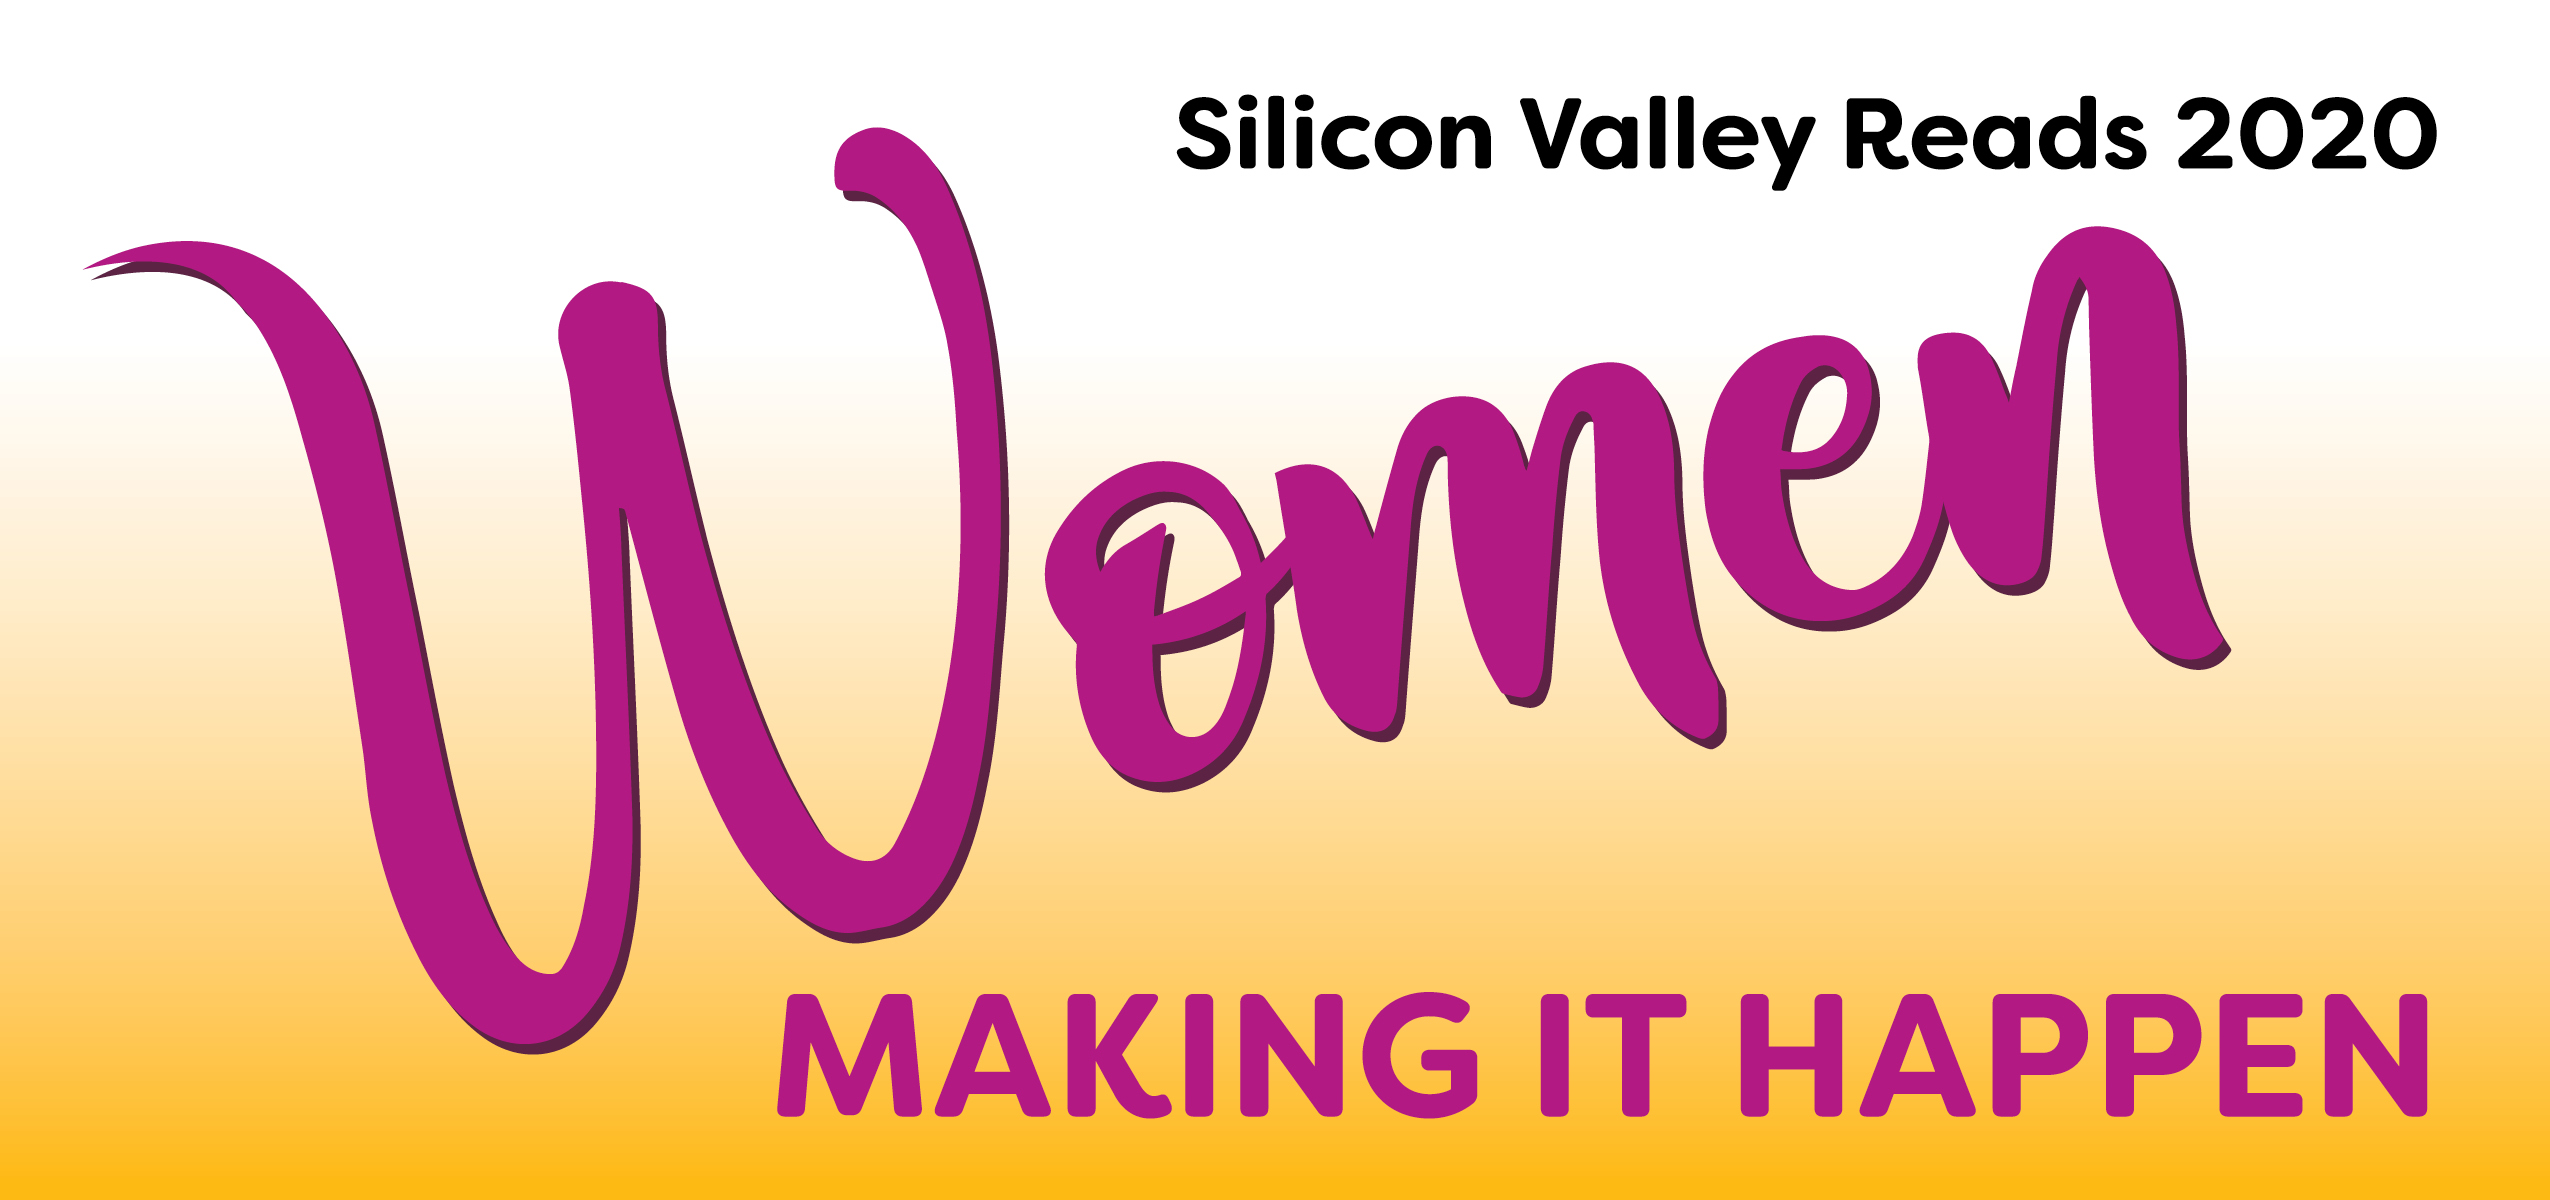 Silicon Valley Reads: Women Making It Happen